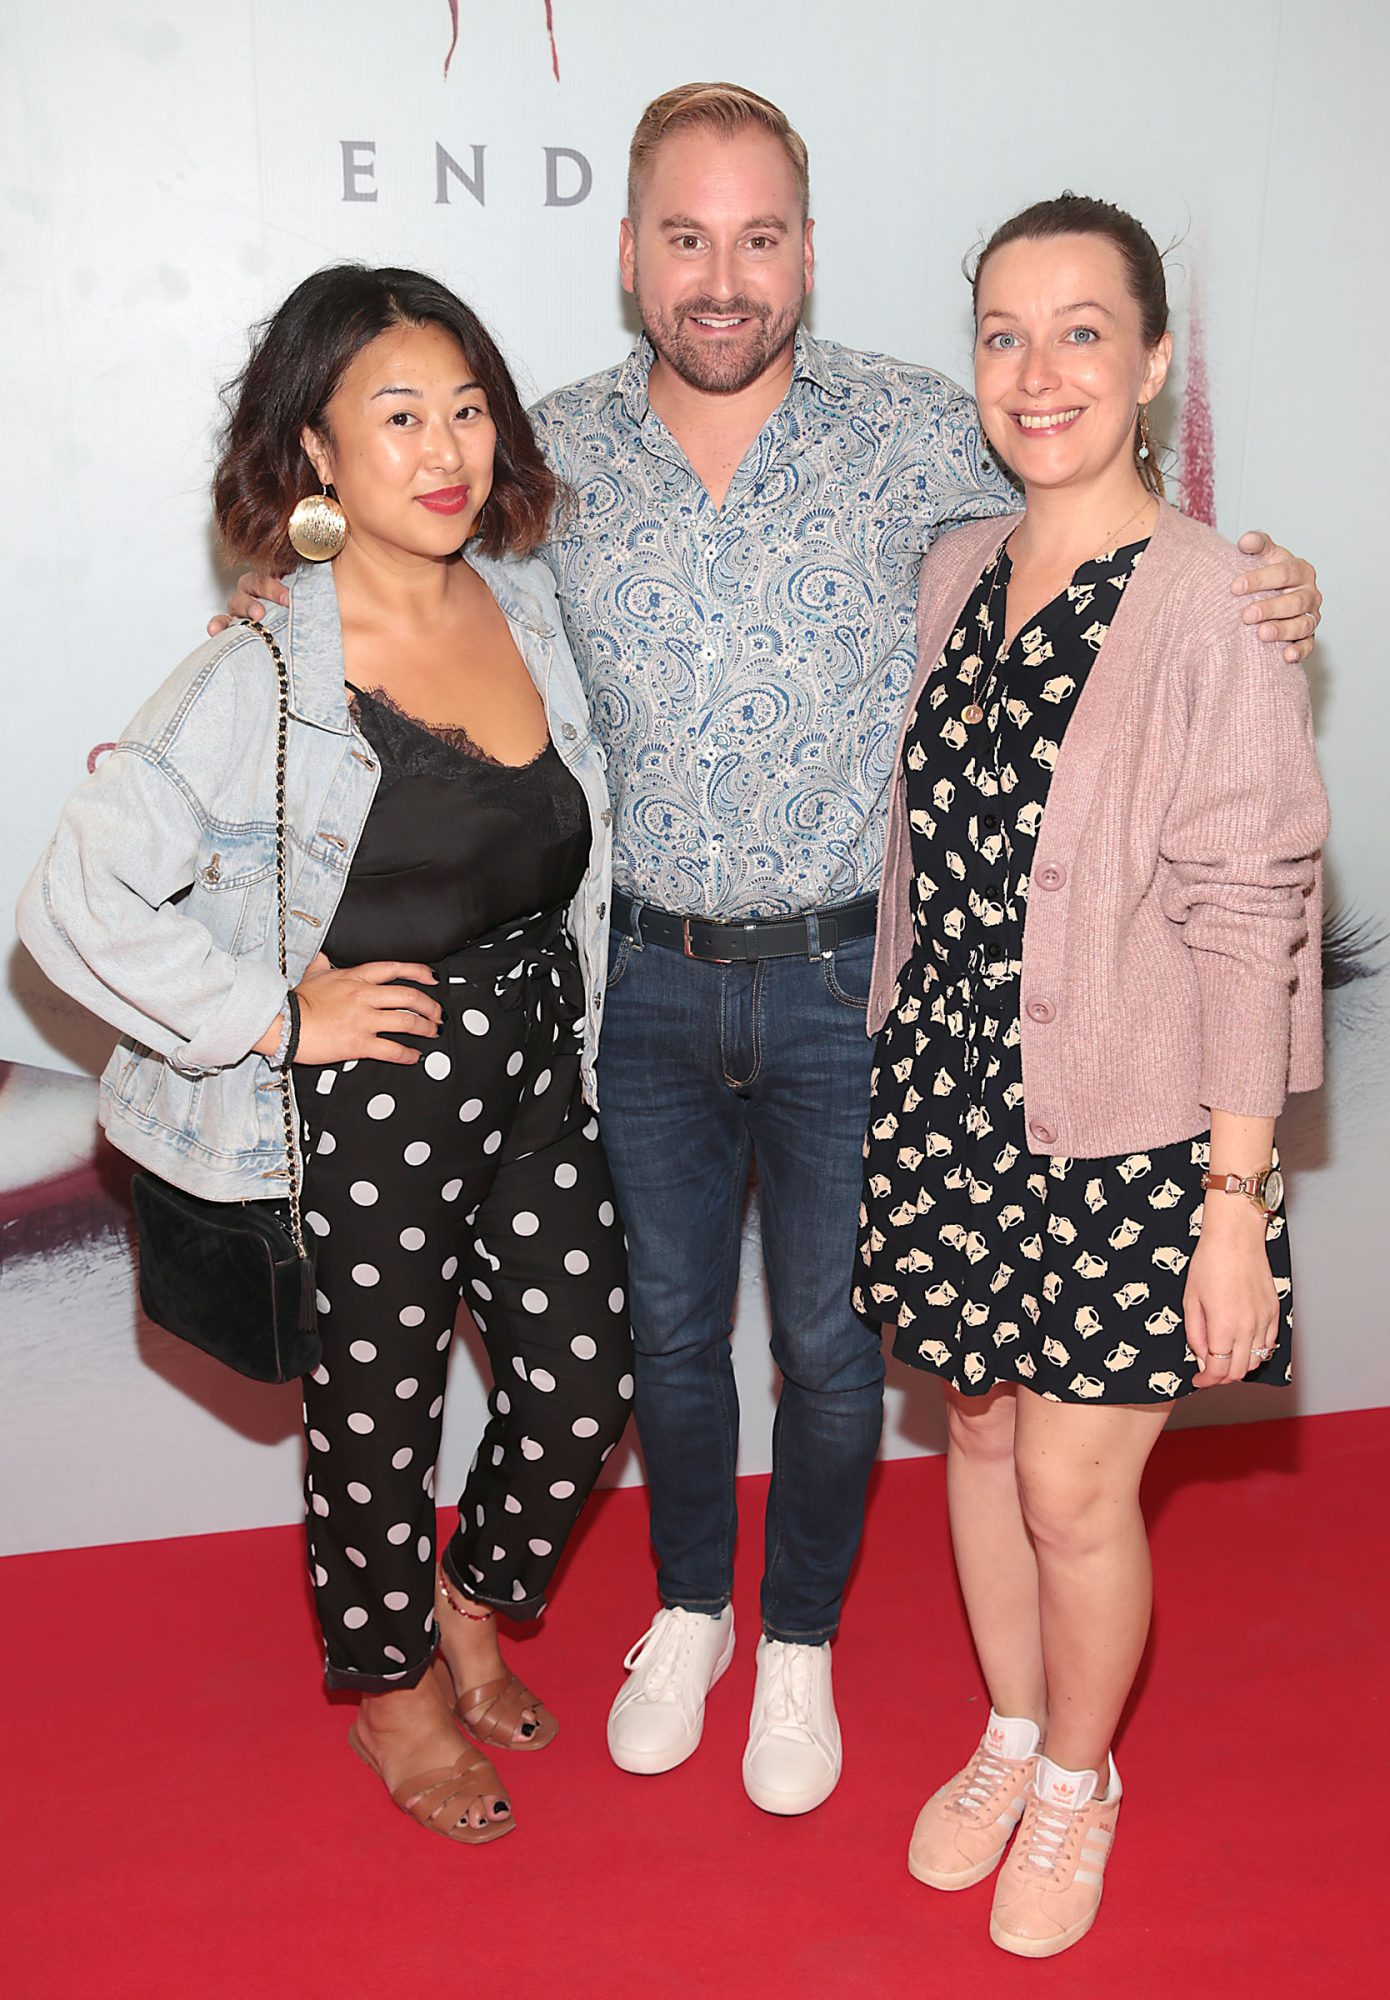 Judy Wong, Ian Packham and Lisa Scott at the Irish premiere of IT Chapter 2 at the Odeon Cinema in Point Square, Dublin. Pic: Brian McEvoy.